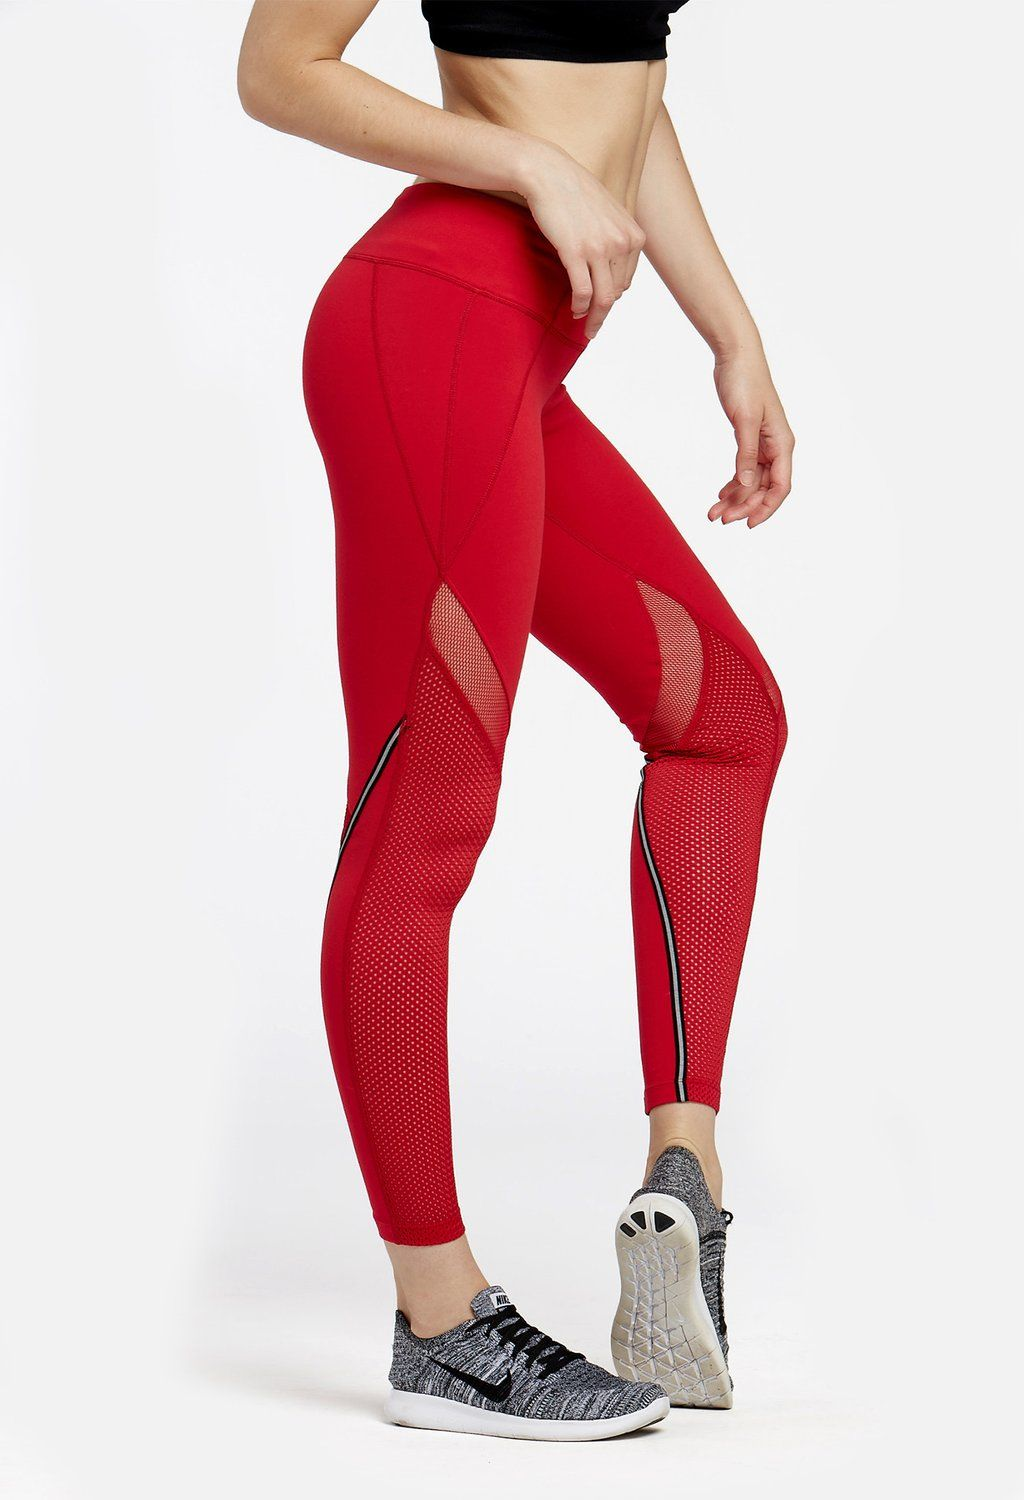 d37870fb7c68 Splits59 Women s Red Full length yoga tight.